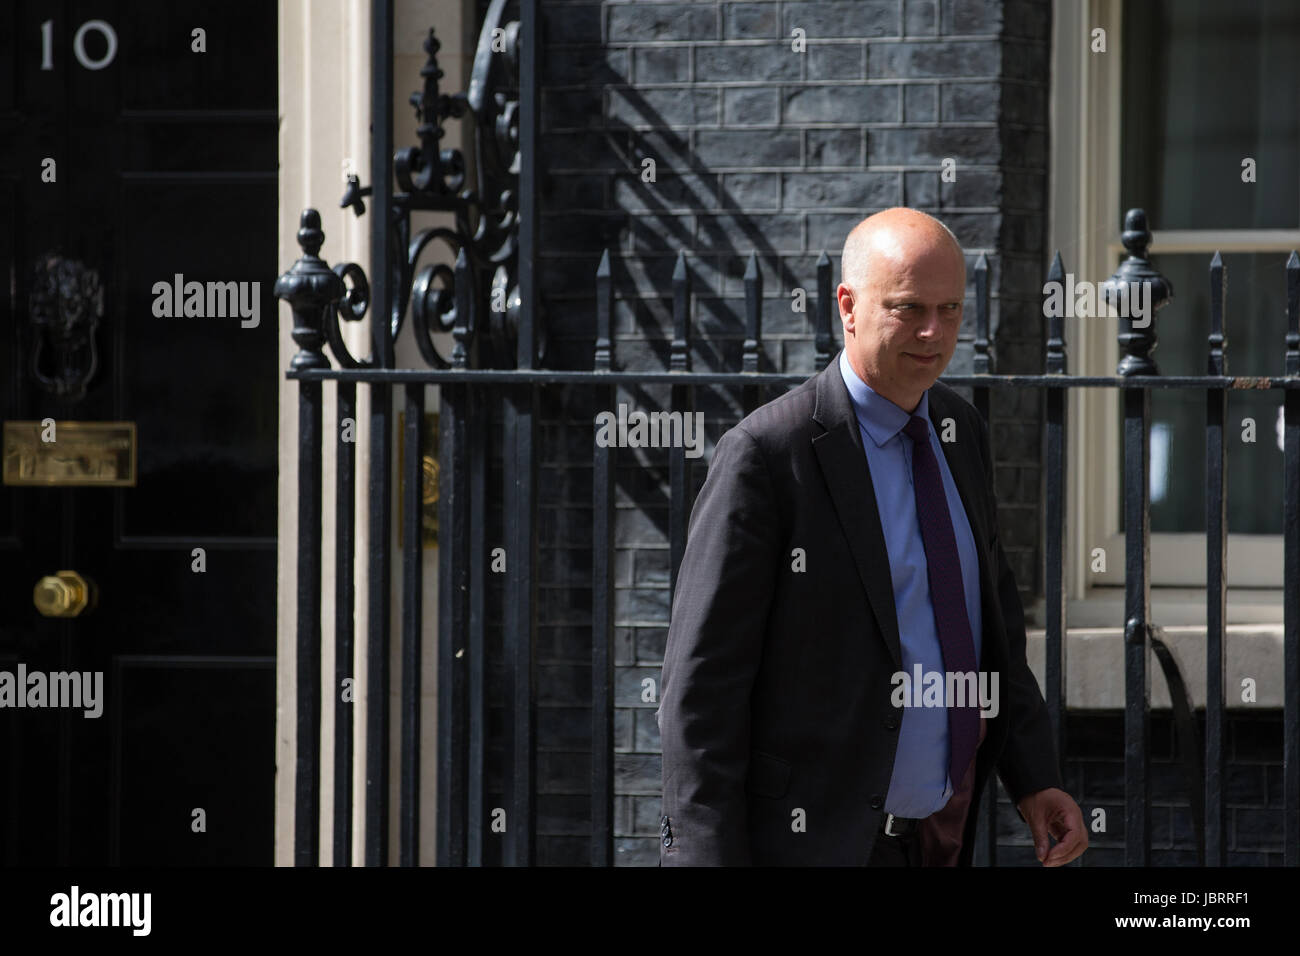 London, UK. 12th June, 2017. Chris Grayling MP, Secretary of State for Transport, leaves 10 Downing Street following - Stock Image